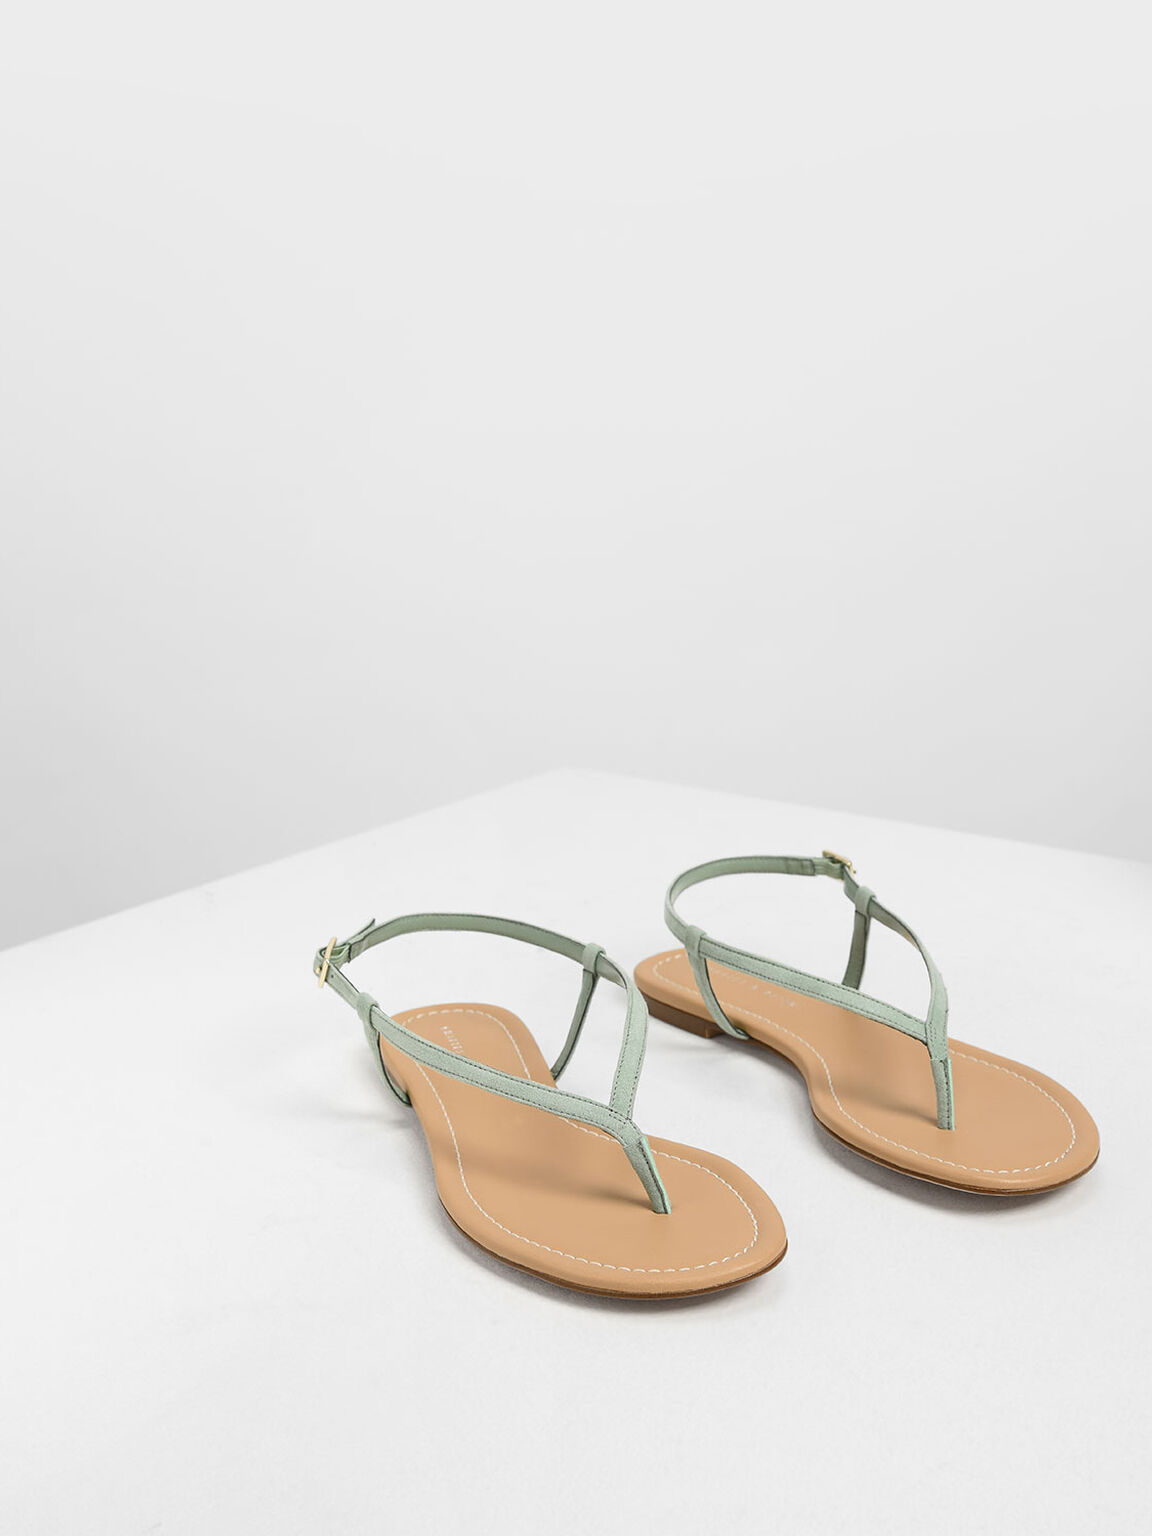 Classic Thong Sandals, Green, hi-res